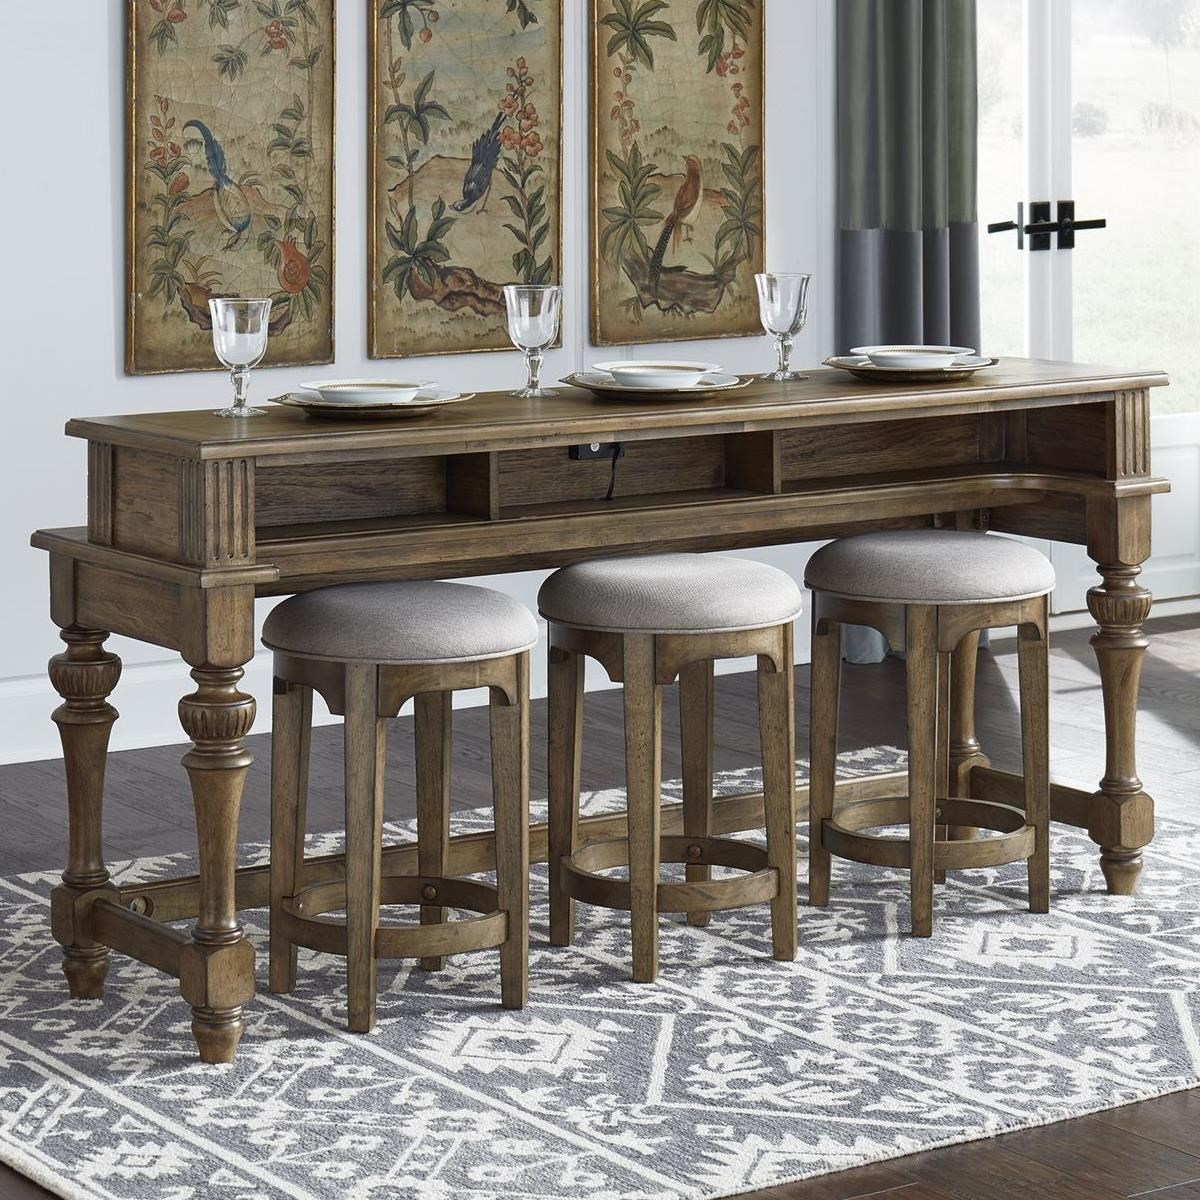 Haven Hall 4-Piece Counter Height Bar Table Set by Liberty Furniture at Northeast Factory Direct